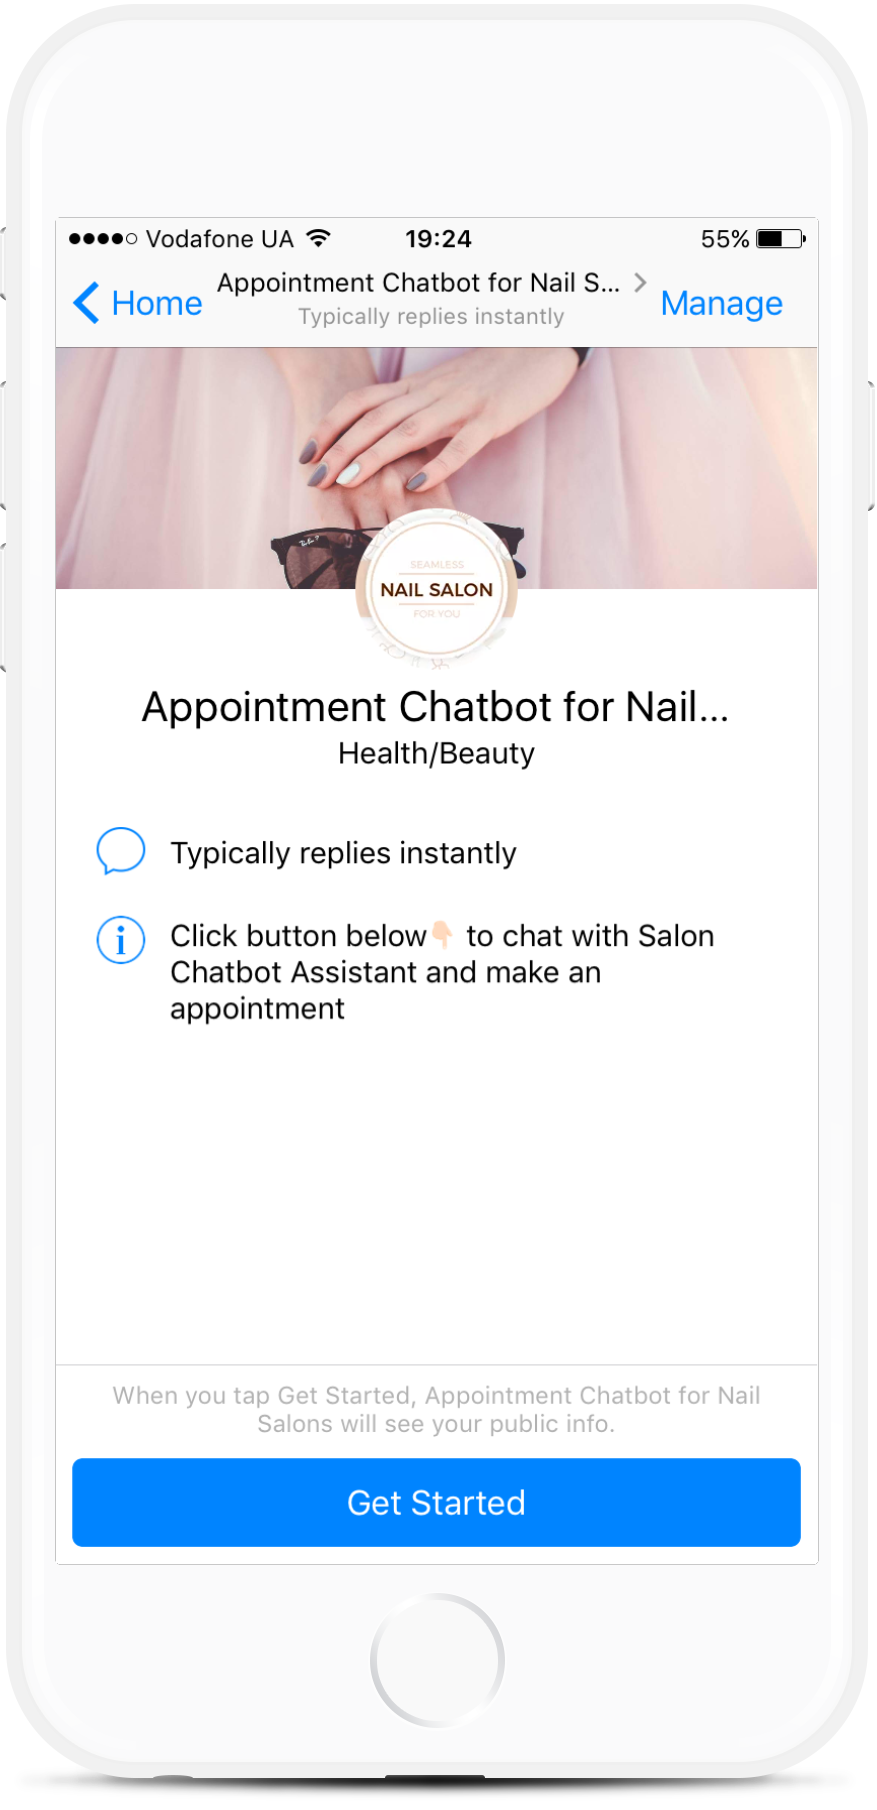 Facebook Messenger Appointment Chatbot for Nail Salons